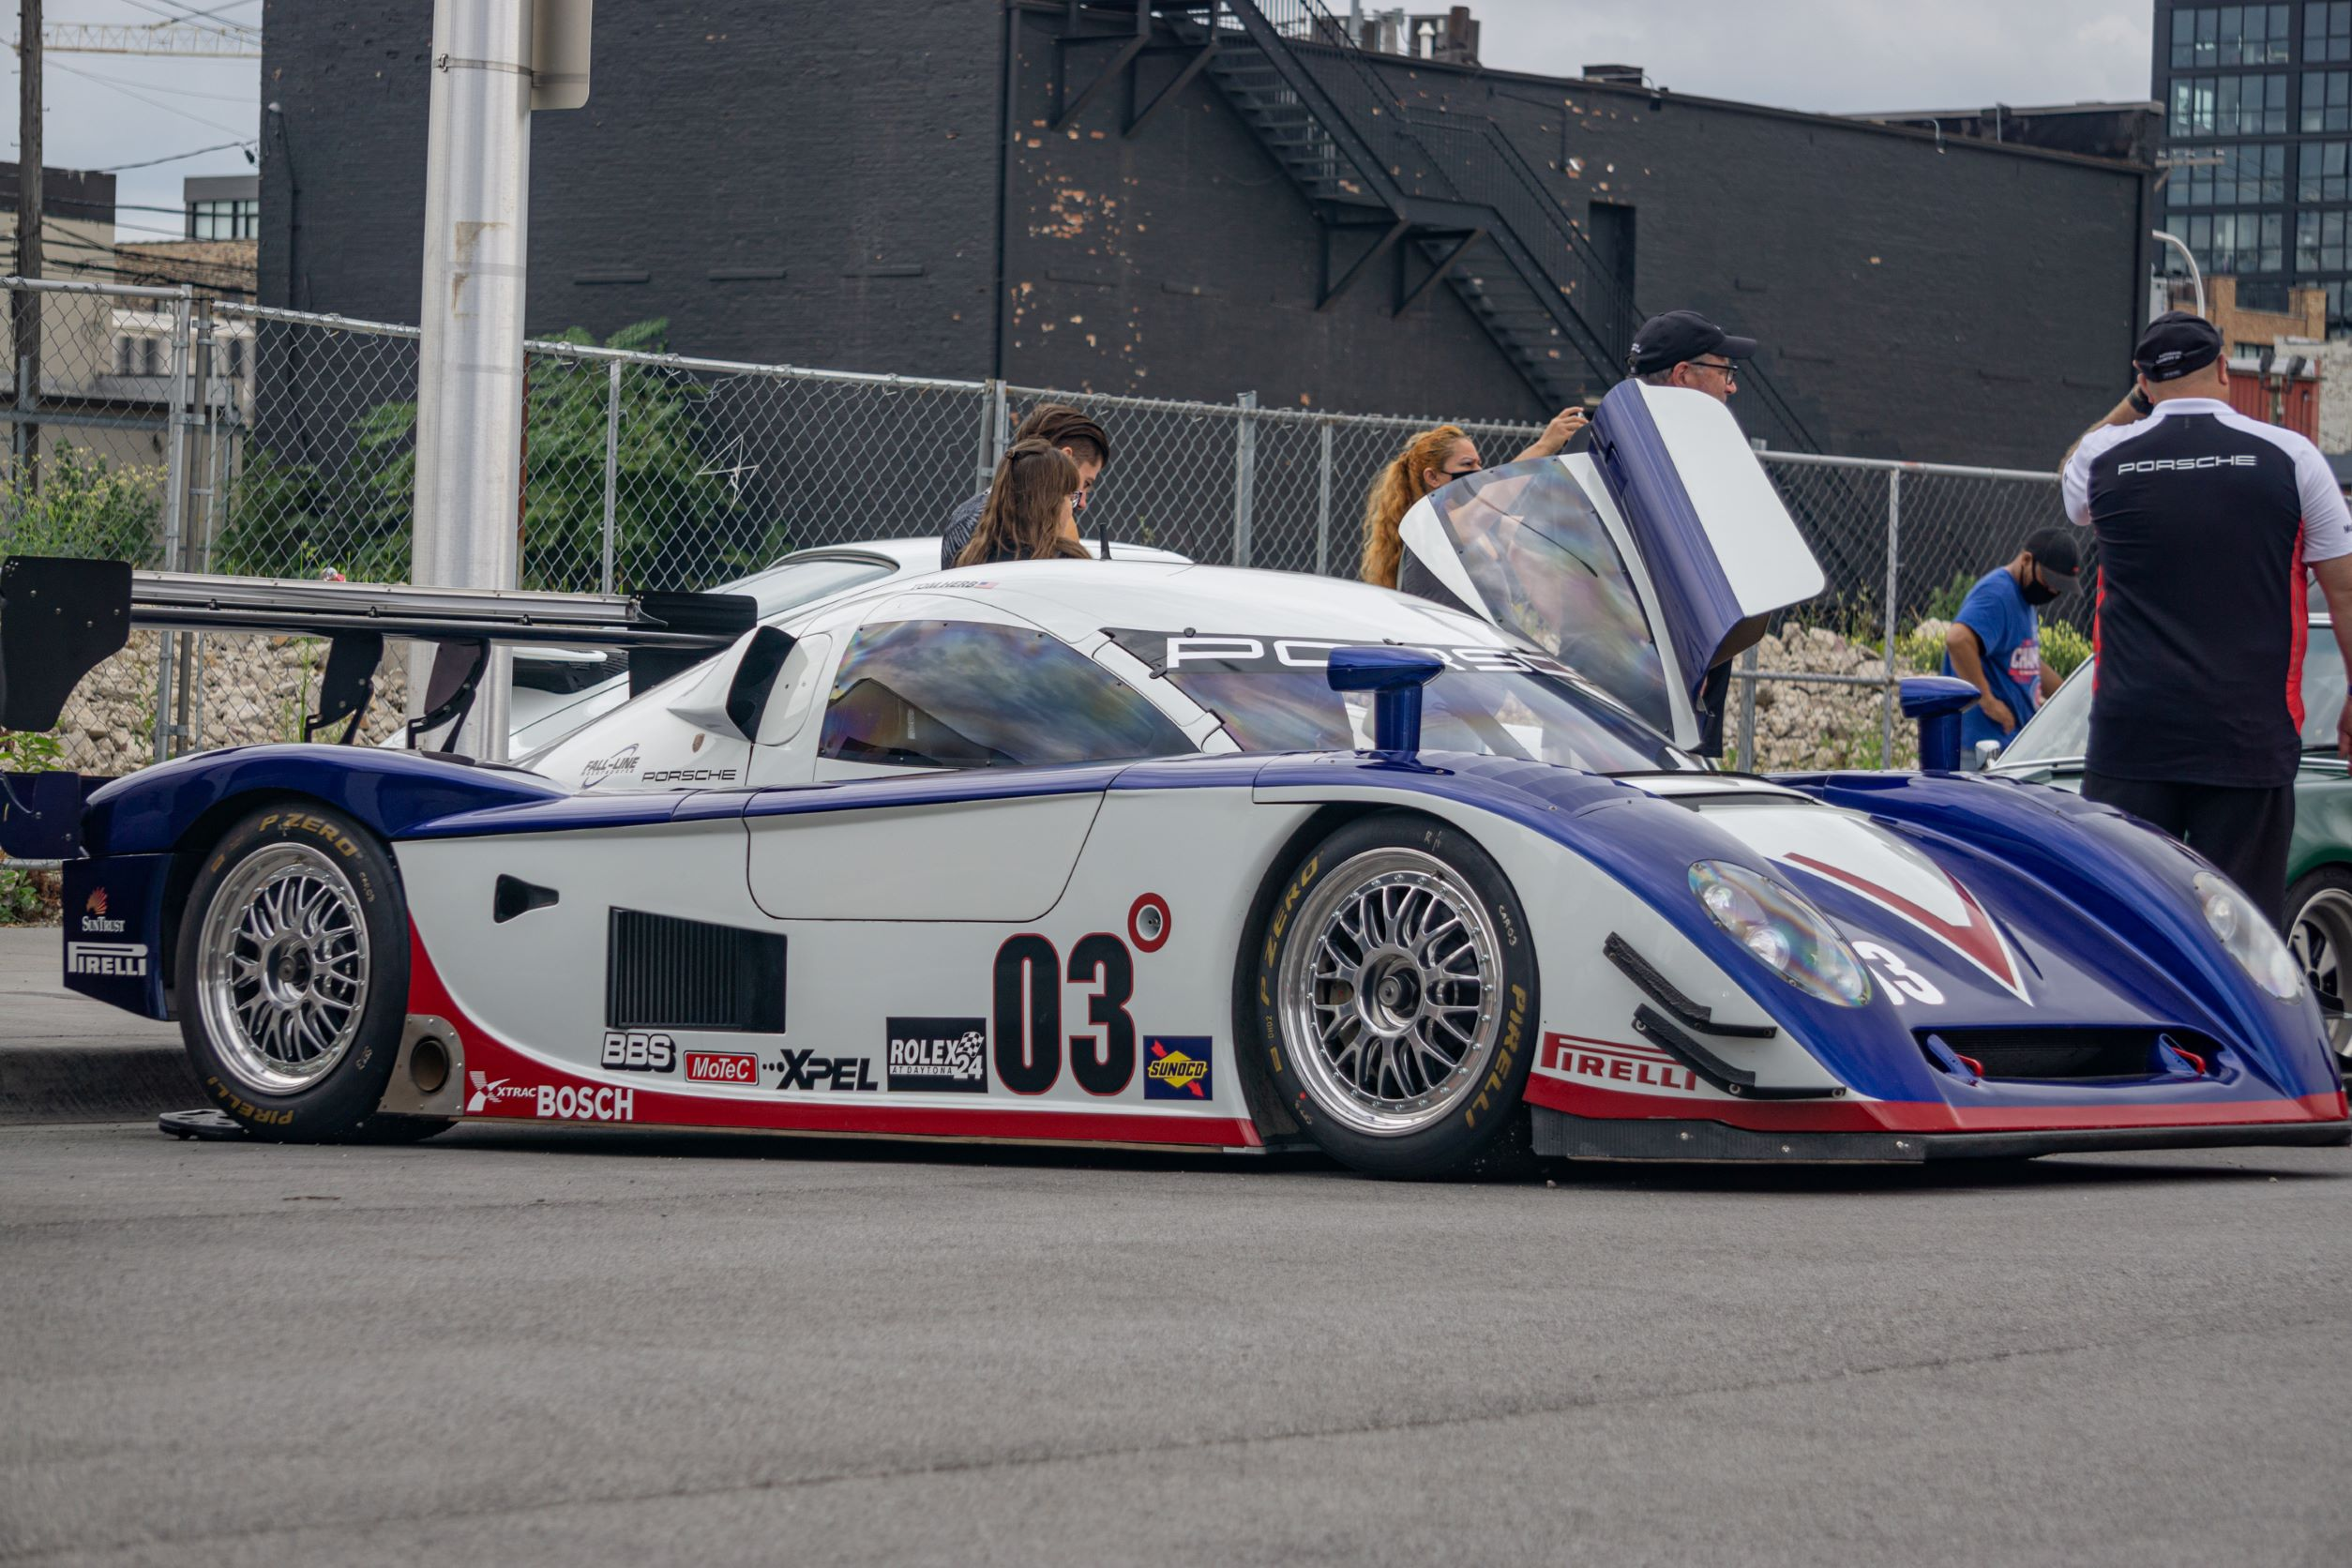 Fall-Line Motorsports' white-blue-and-red Porsche Crawford Daytona Prototype at Checkeditout